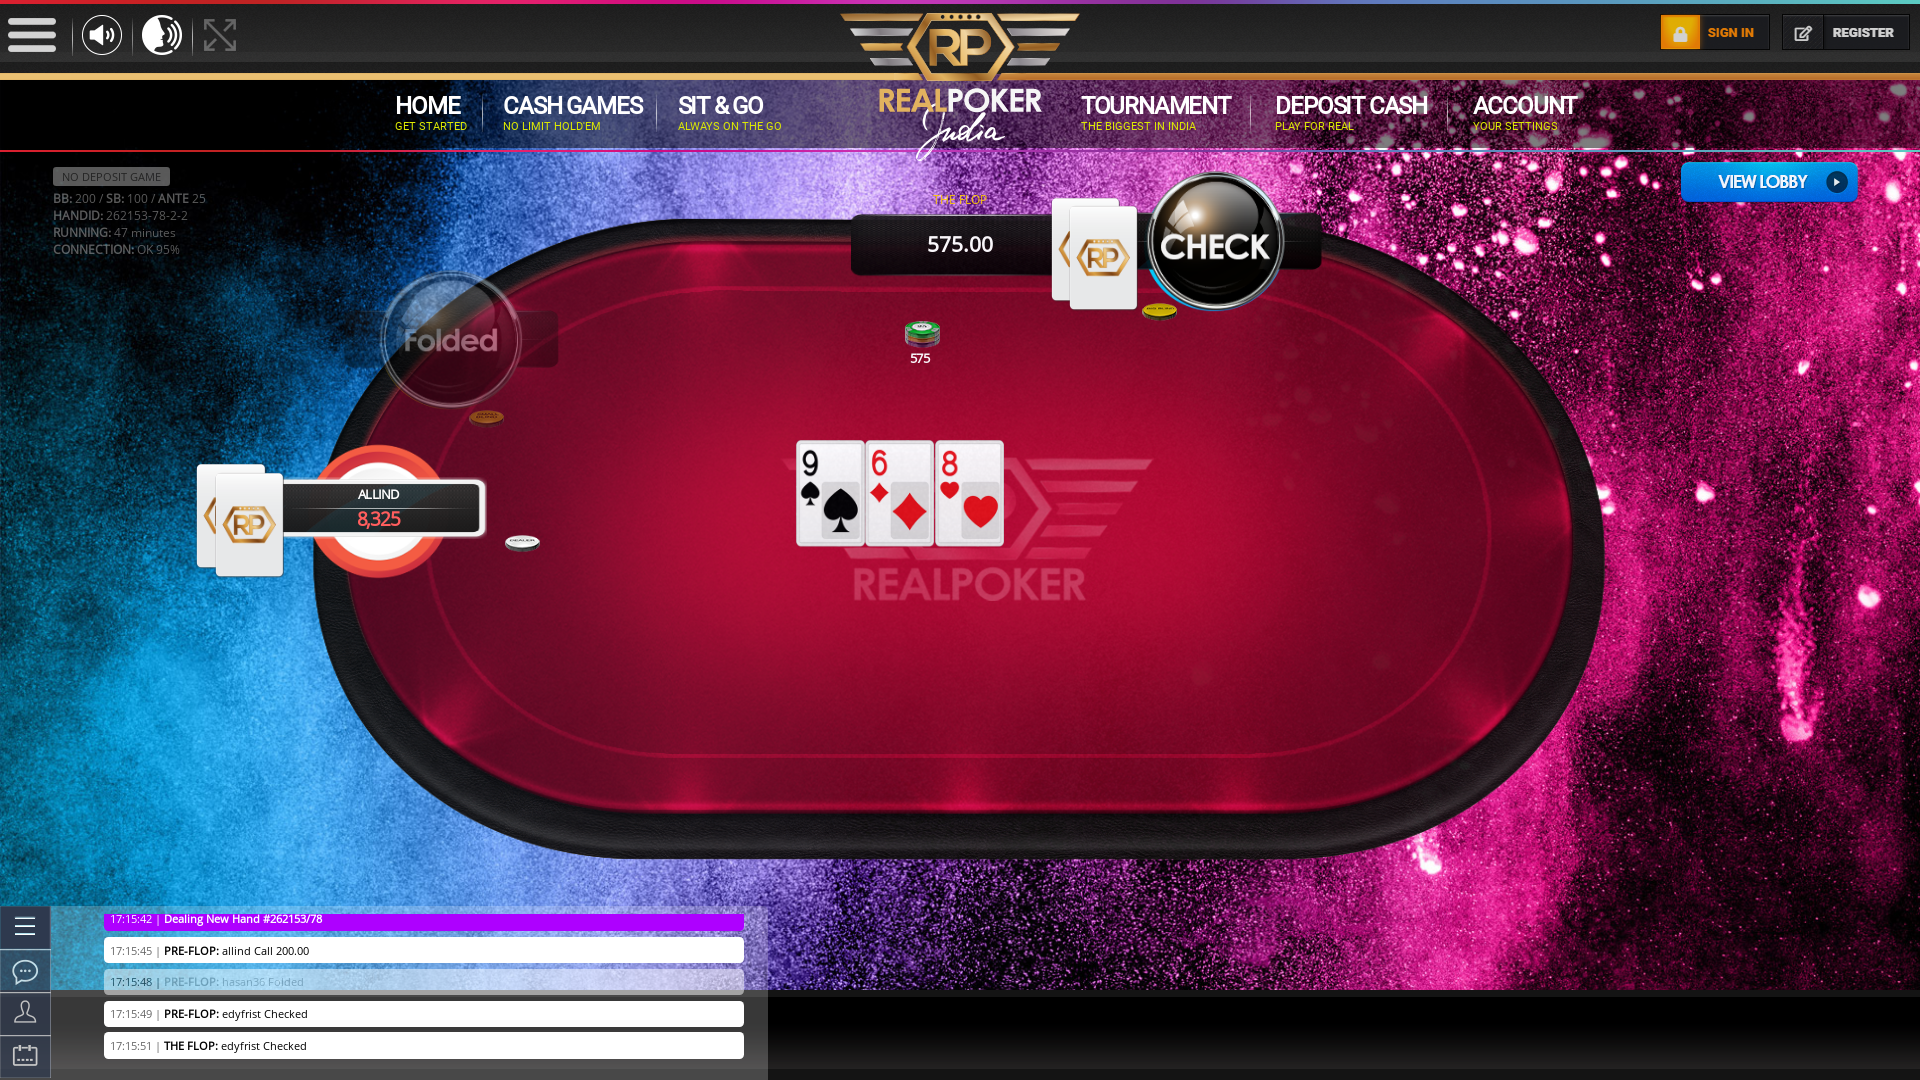 Indian 10 player poker in the 46th minute